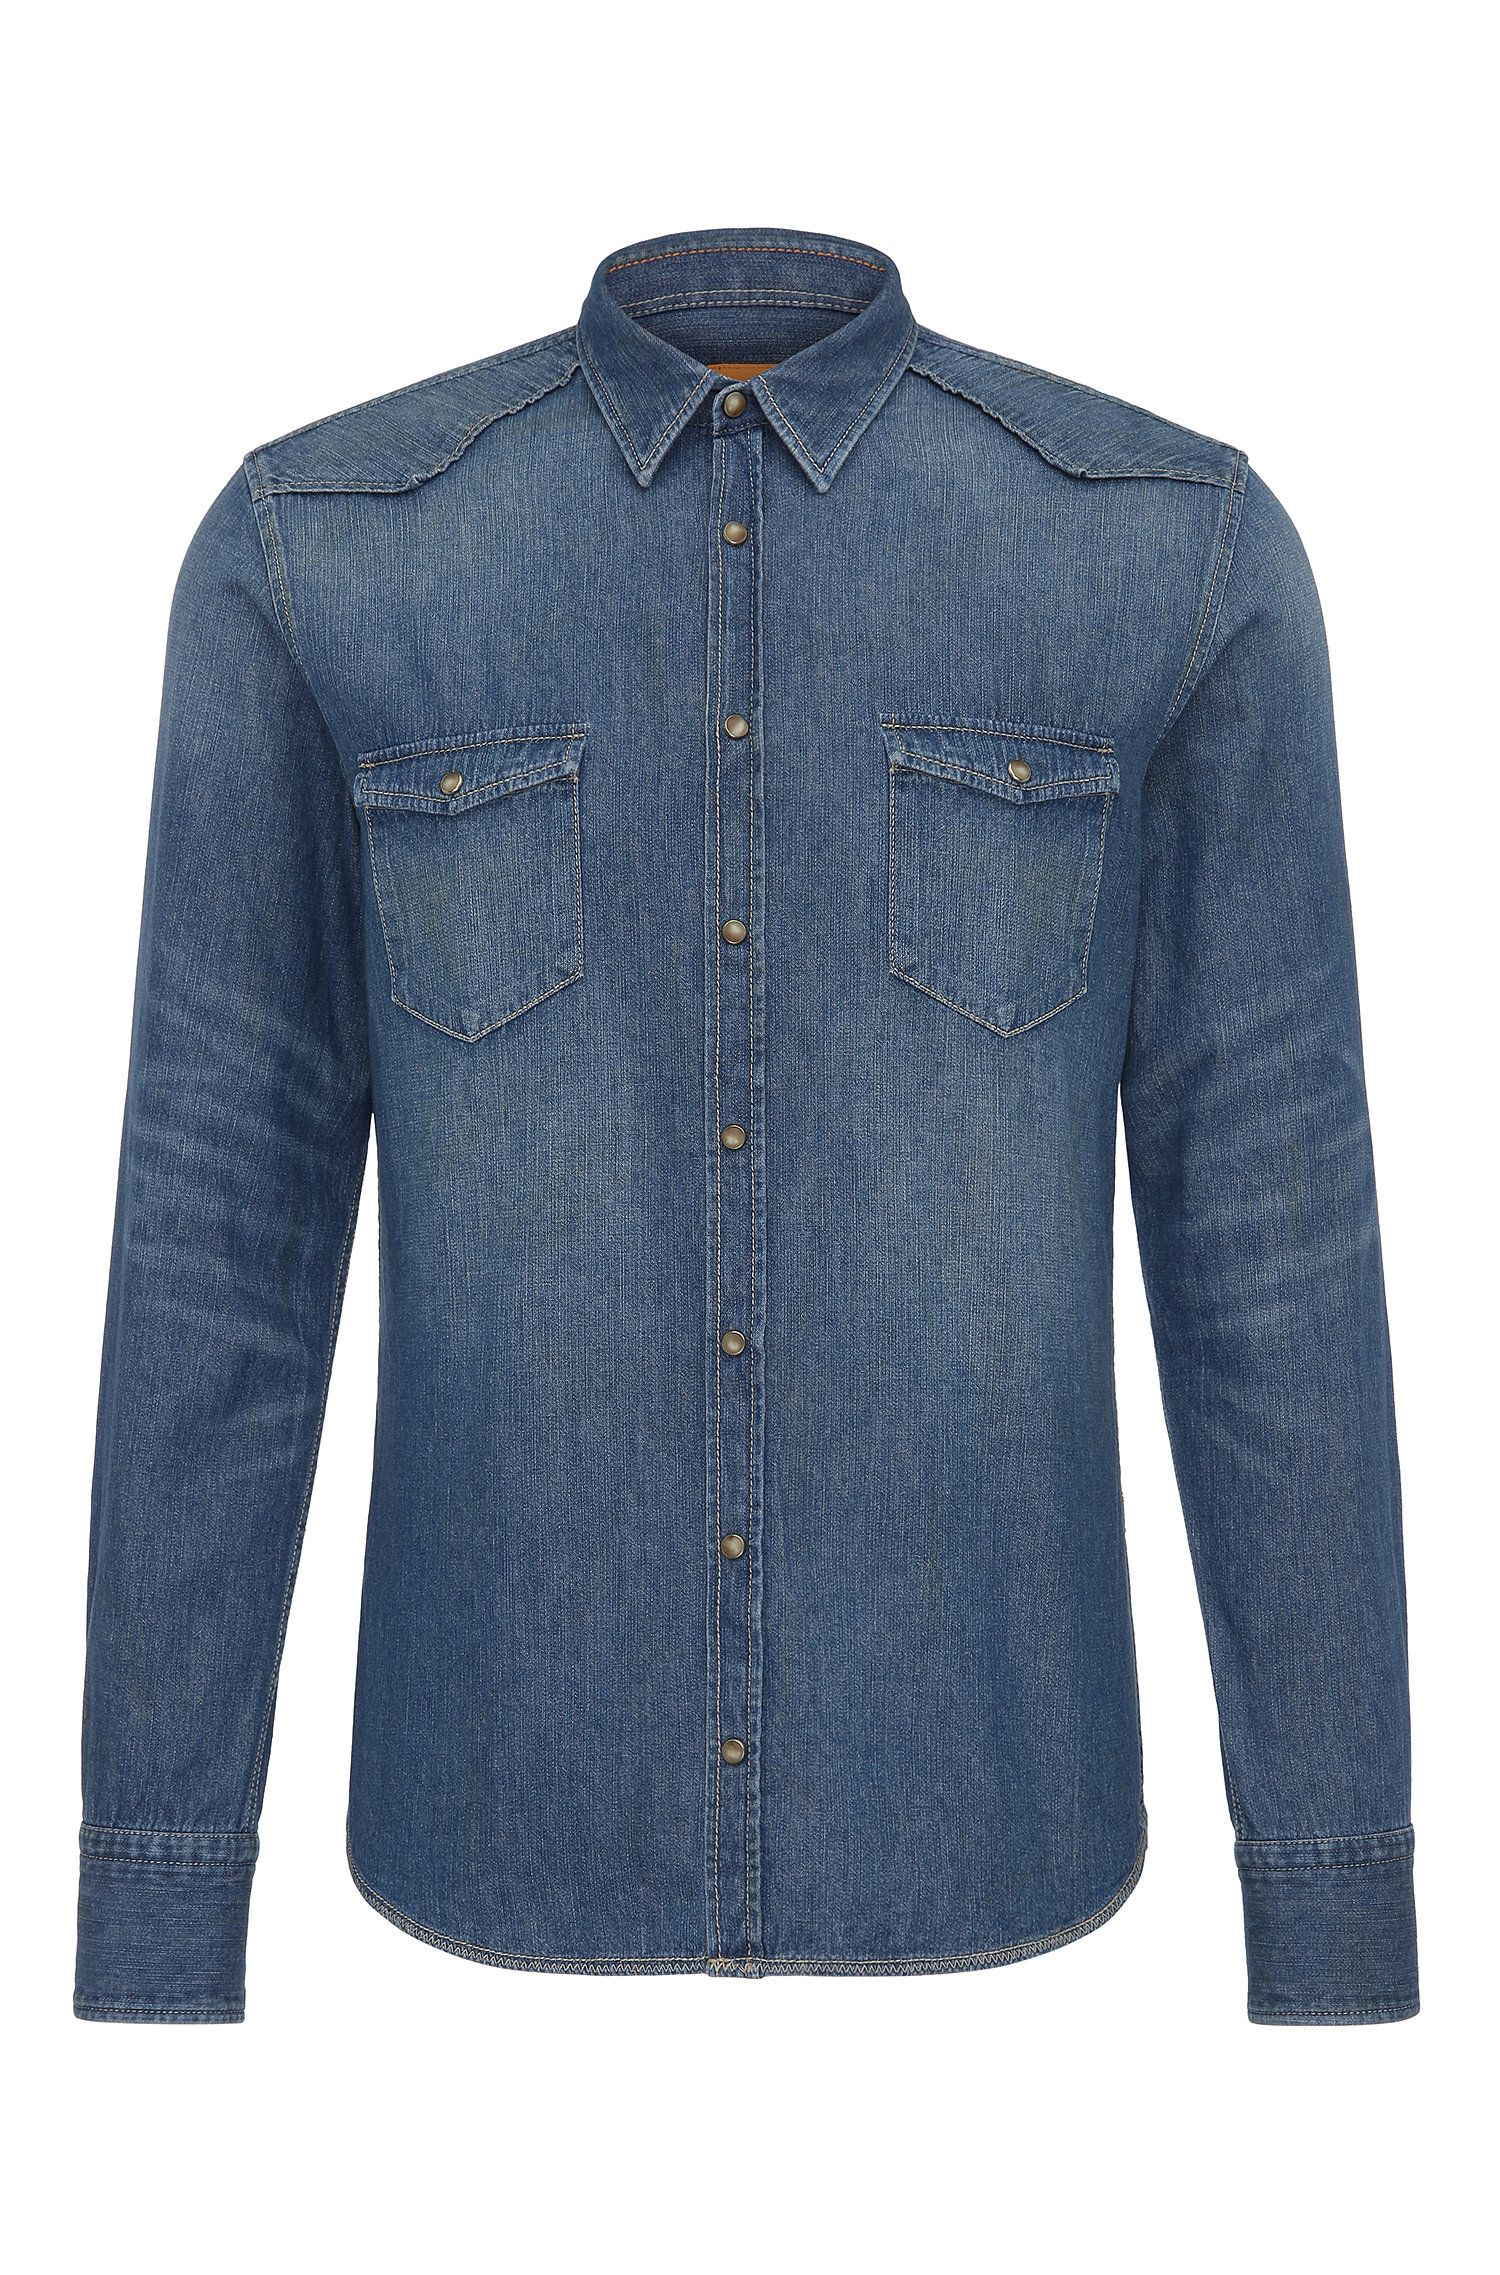 'Erodeo' | Extra-Slim Fit, Western Cotton Button Down Shirt